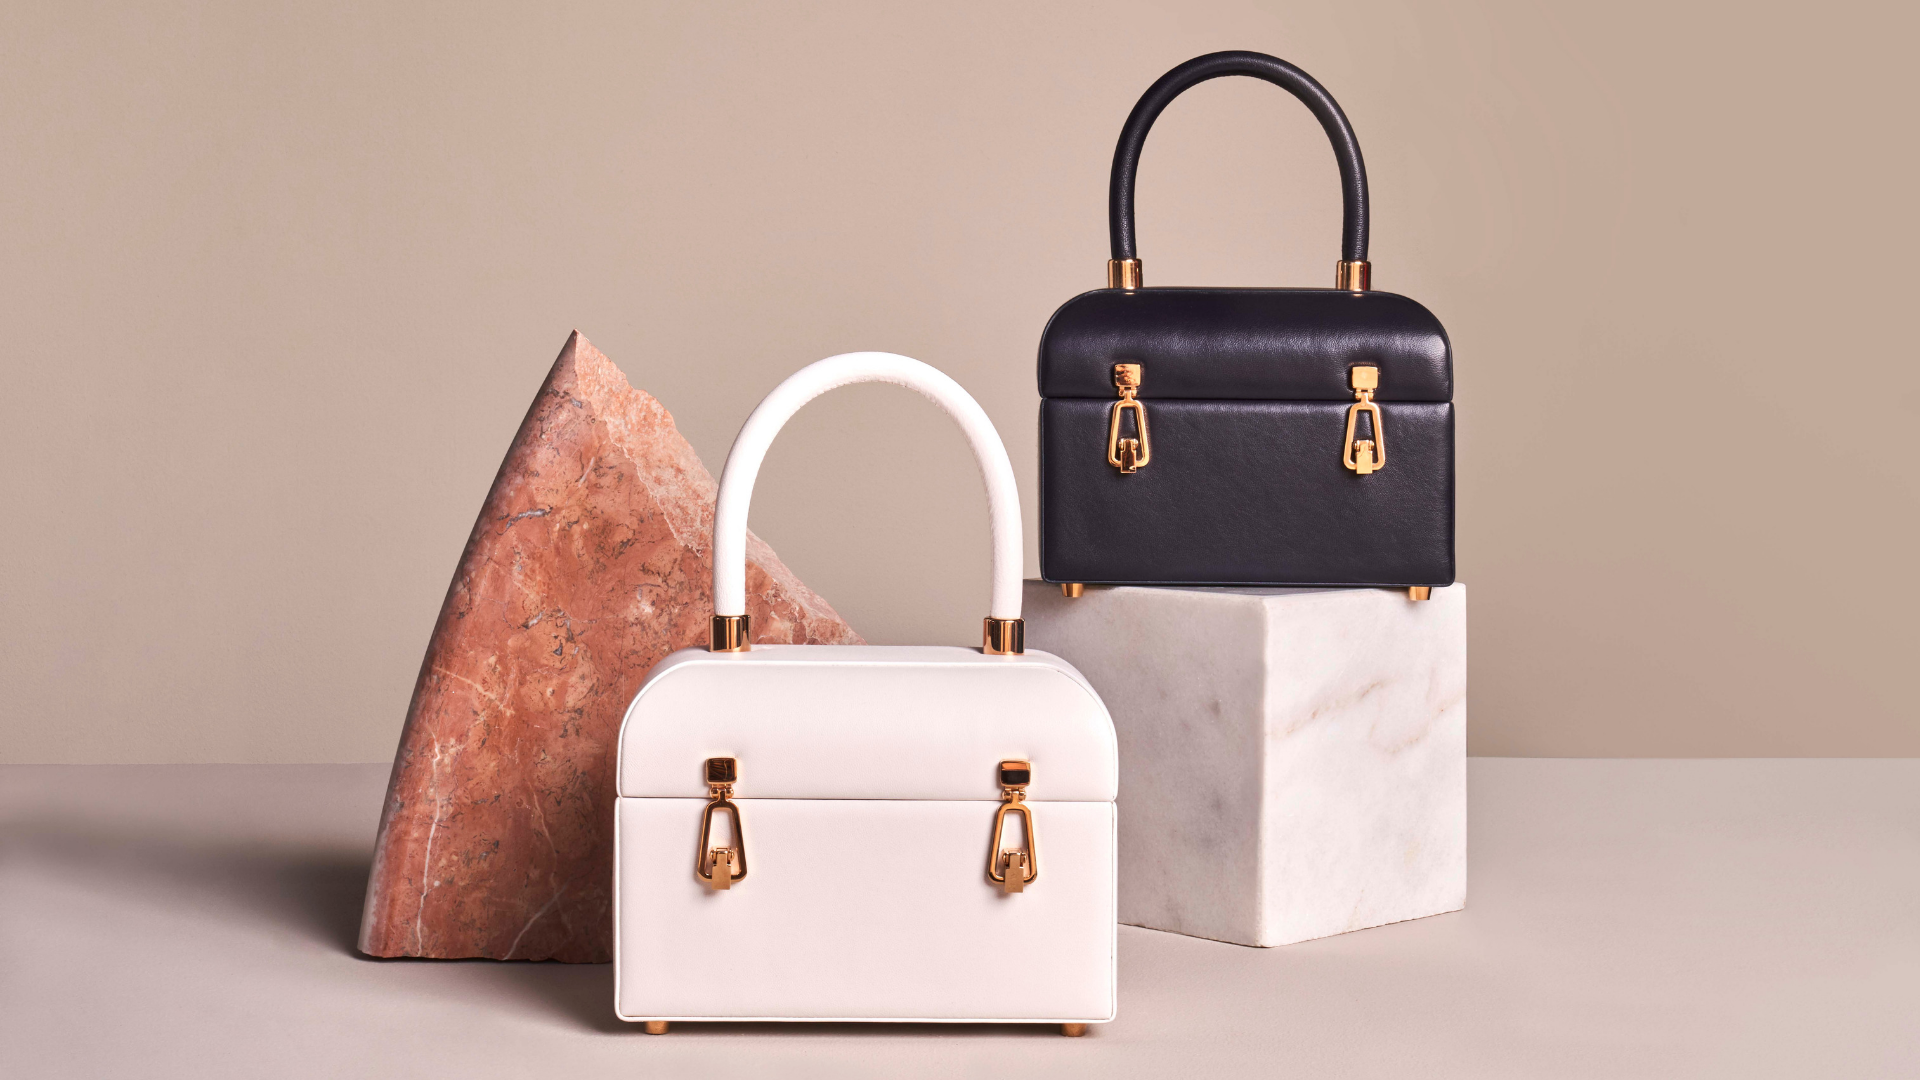 Level Shoes Just Exclusively Launched Gabriela Hearst's Handbag Collection